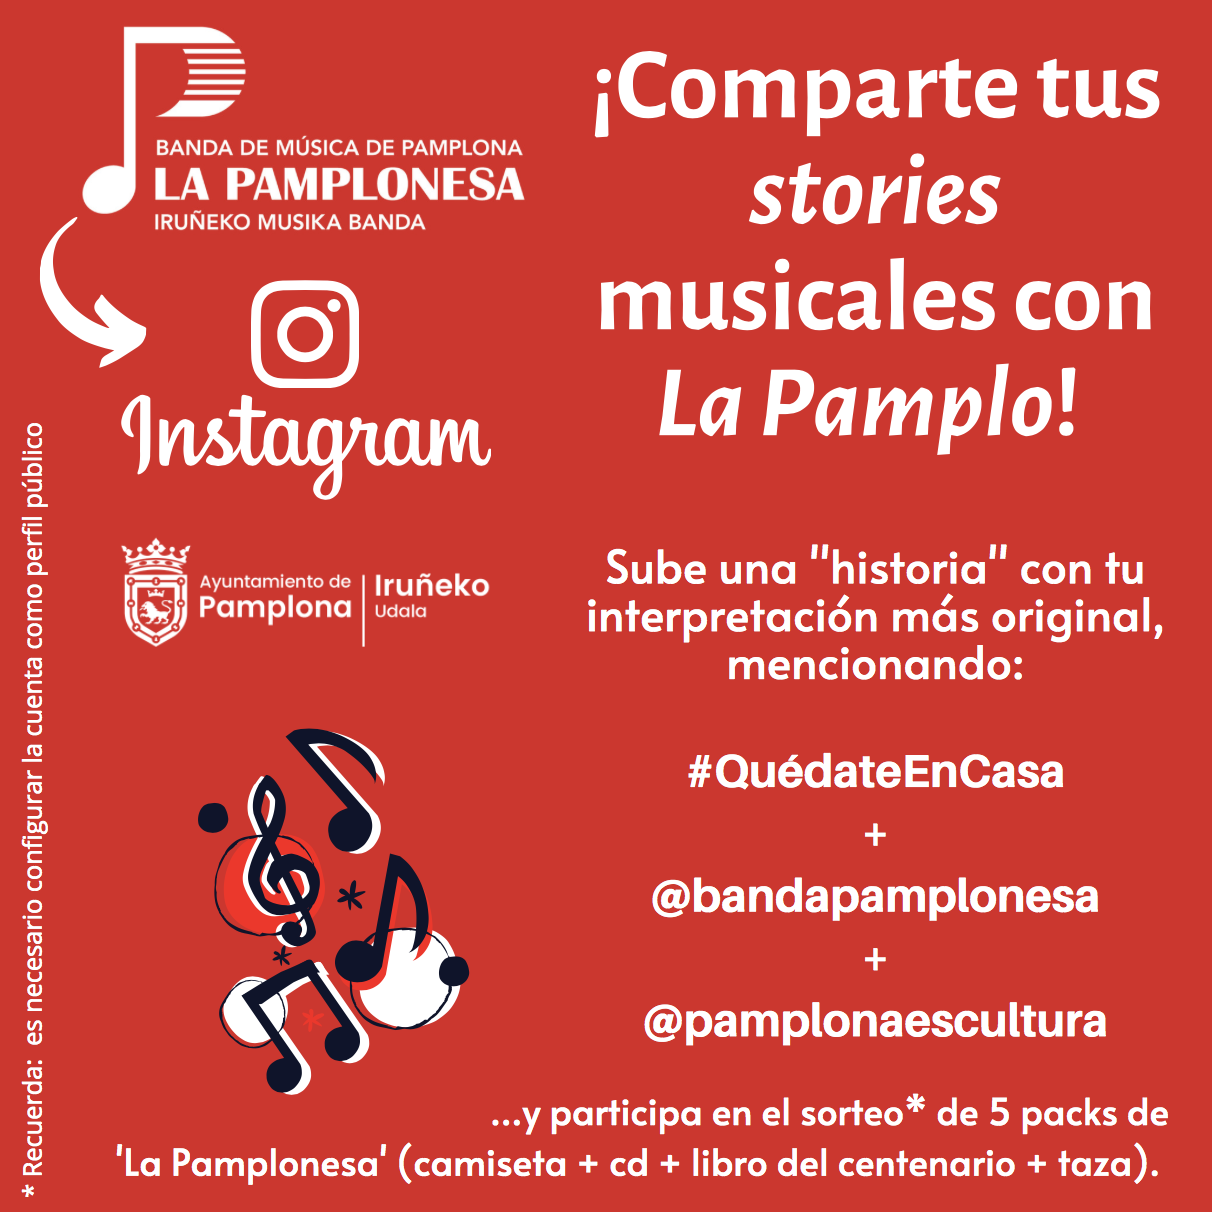 Comparte stories musicales con La Pamplo